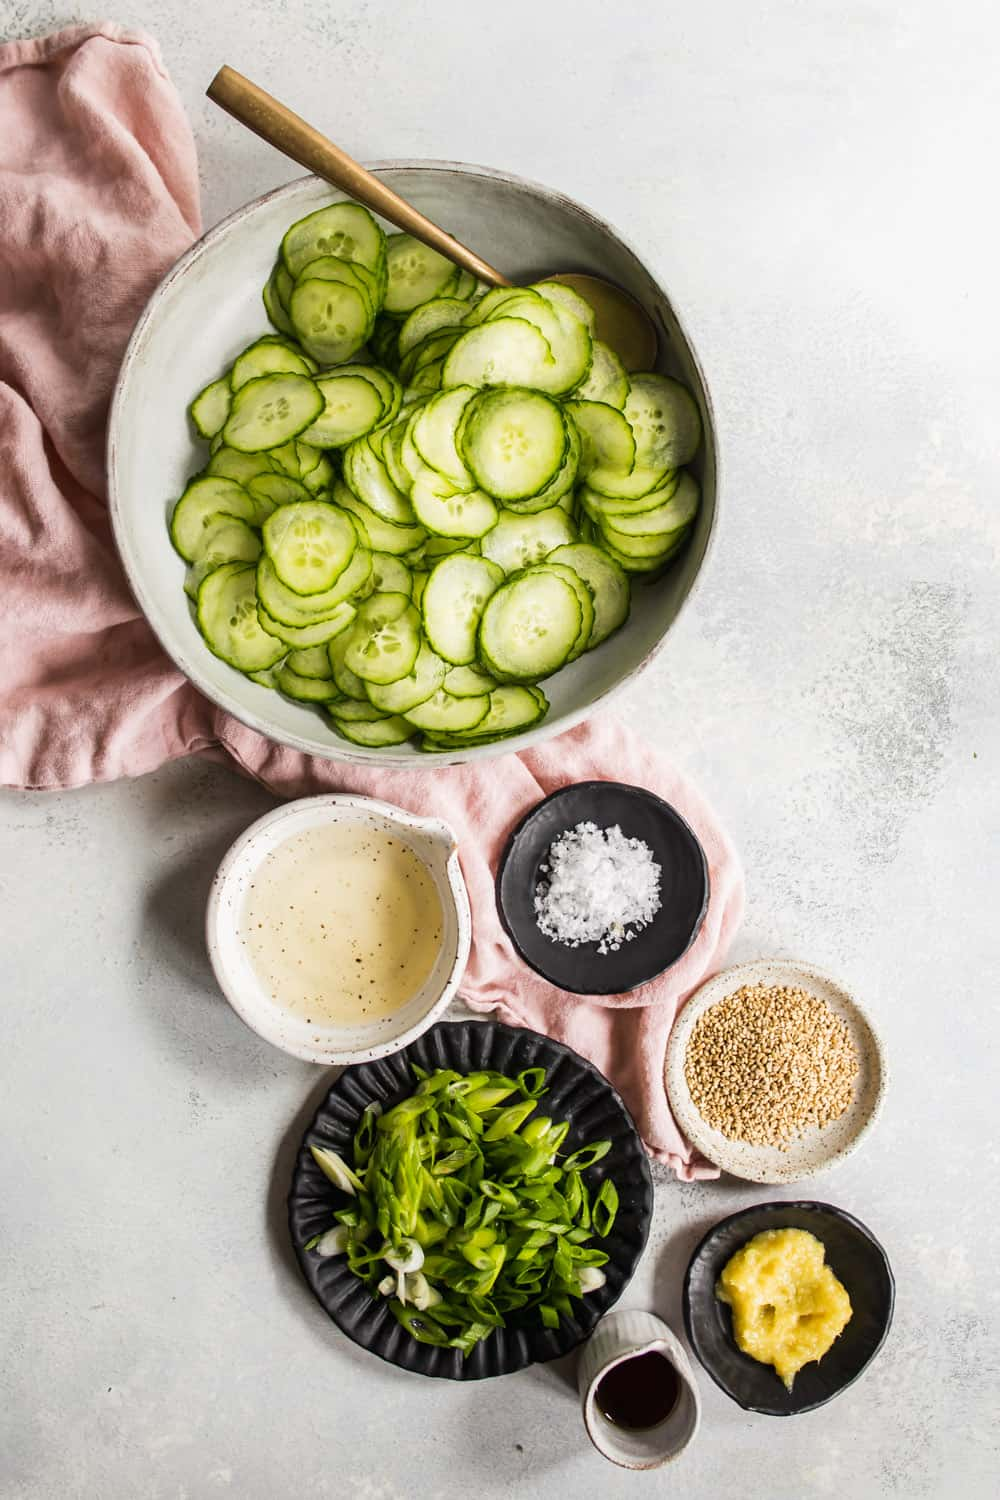 Seperate bowls with asian cucumber salad ingredients